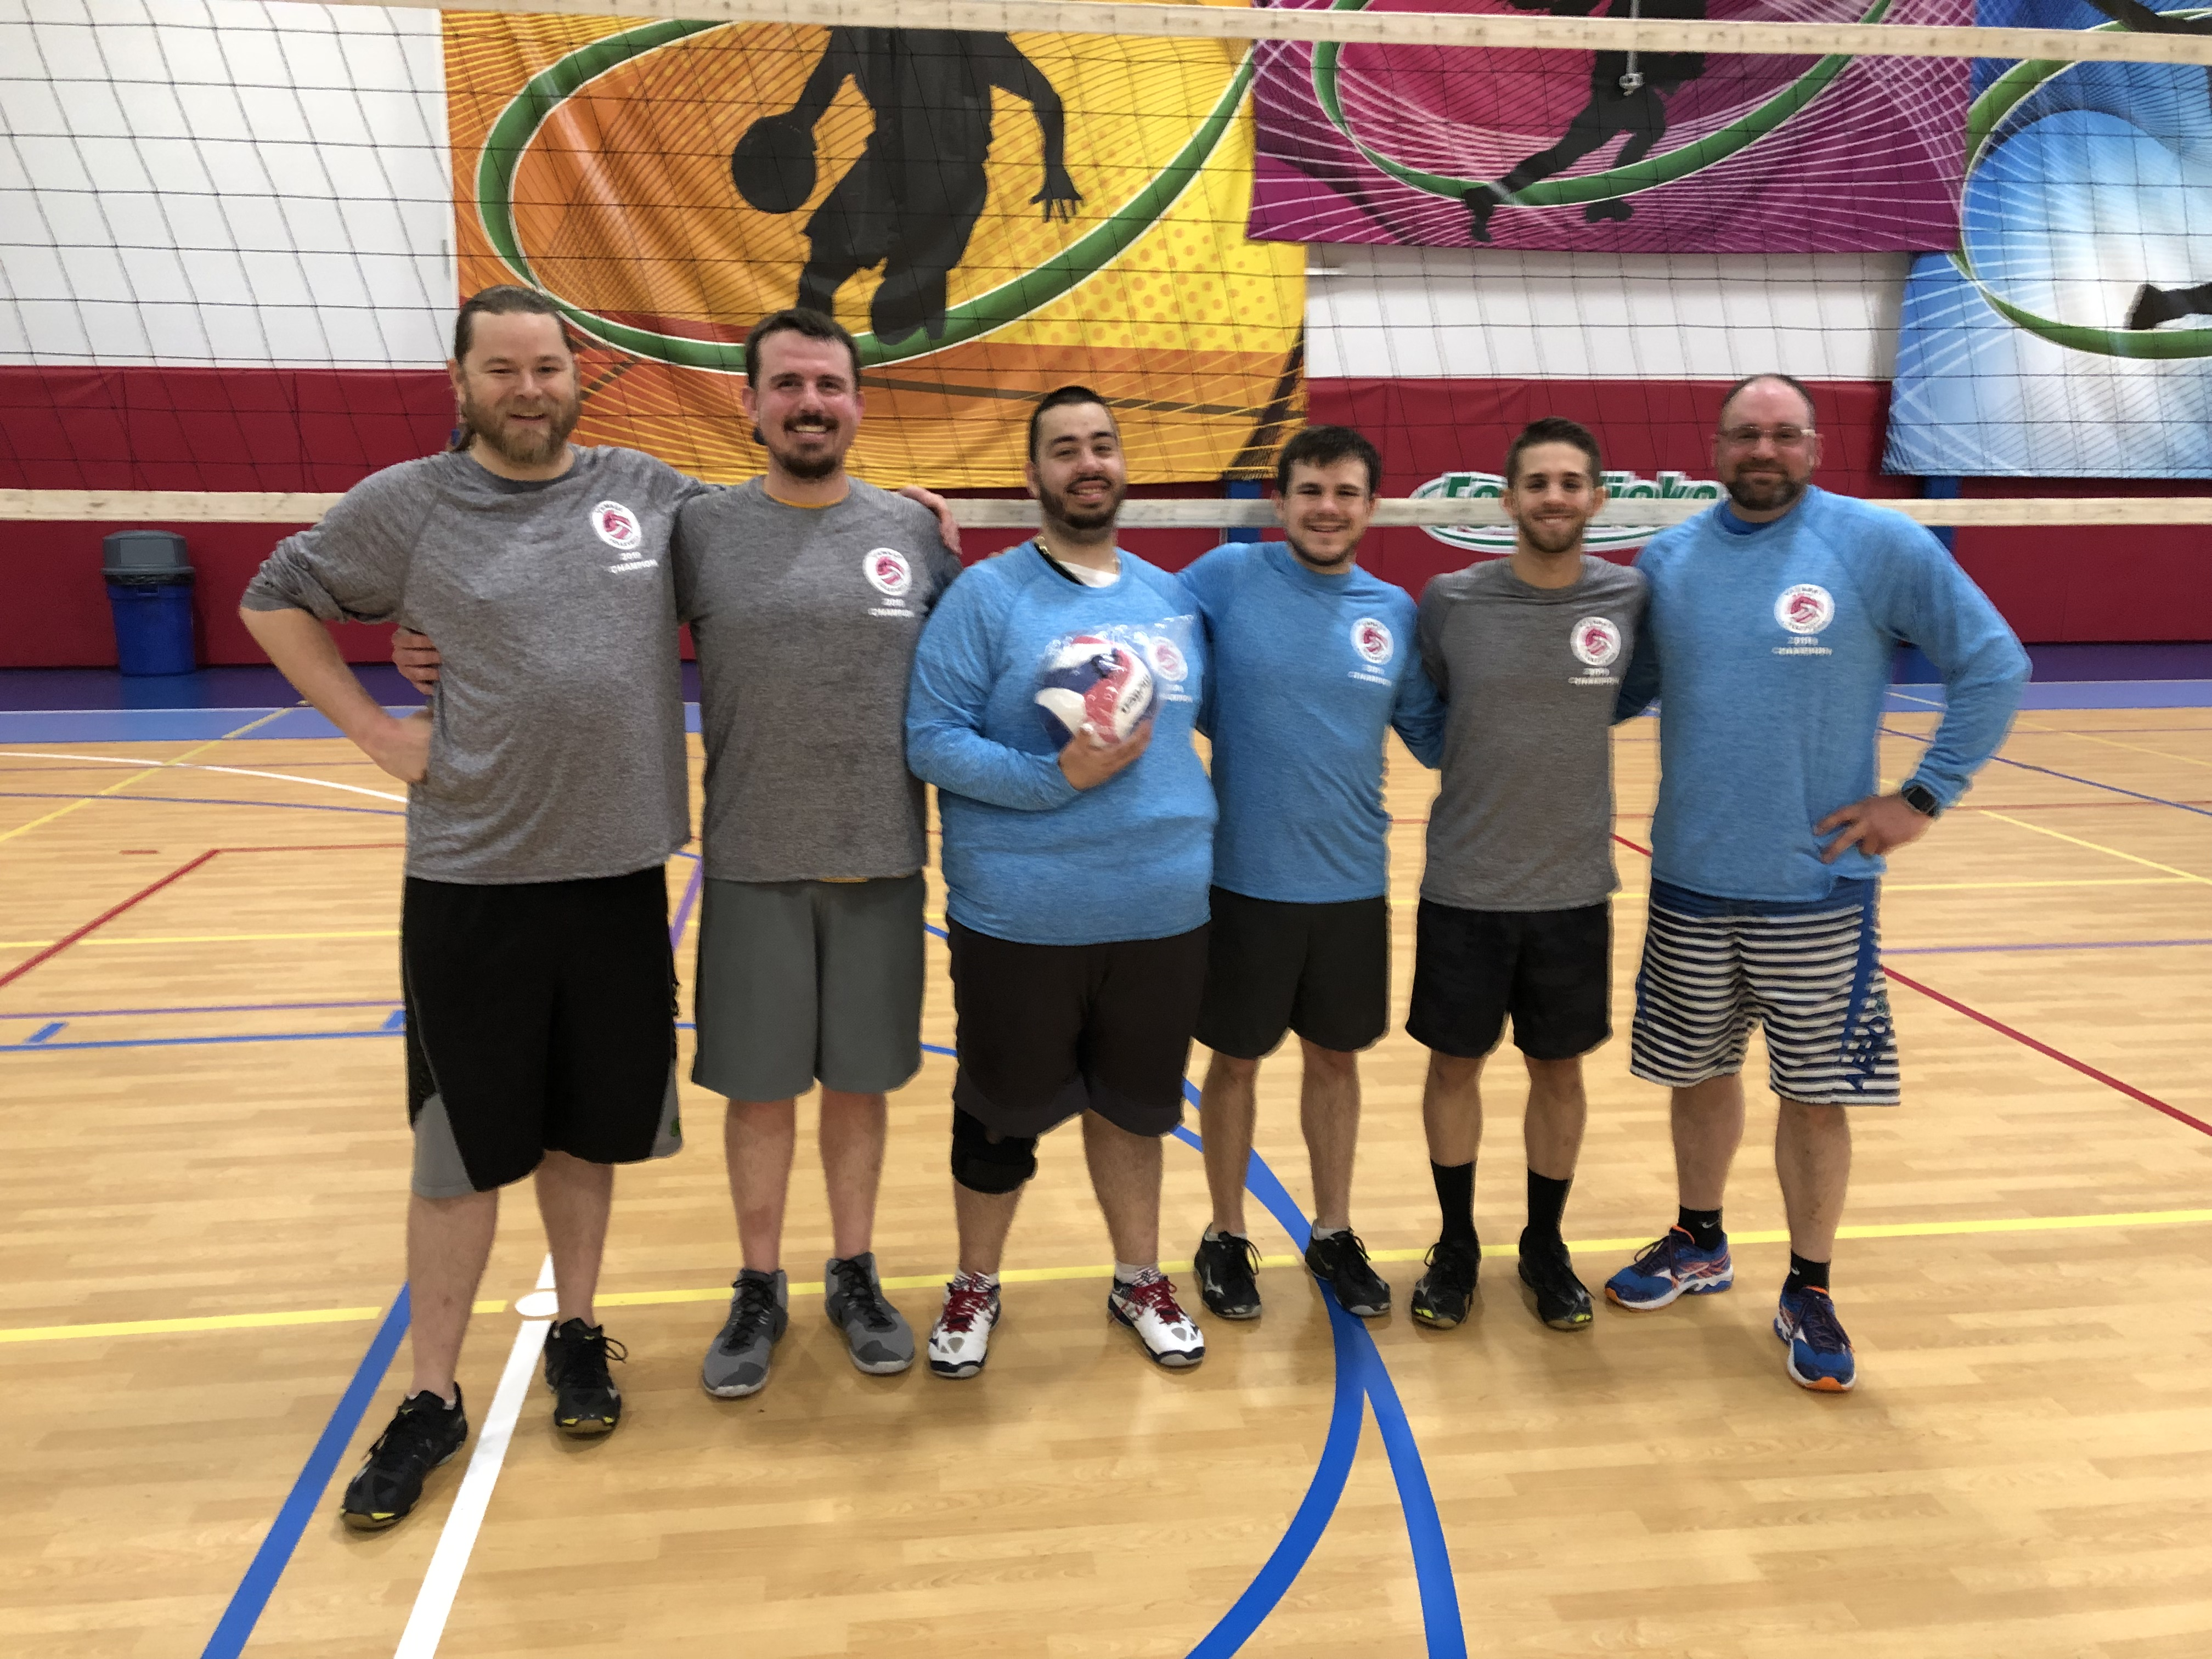 5/5/2019 Broken Plays wins MC champs over Angry Pelicans